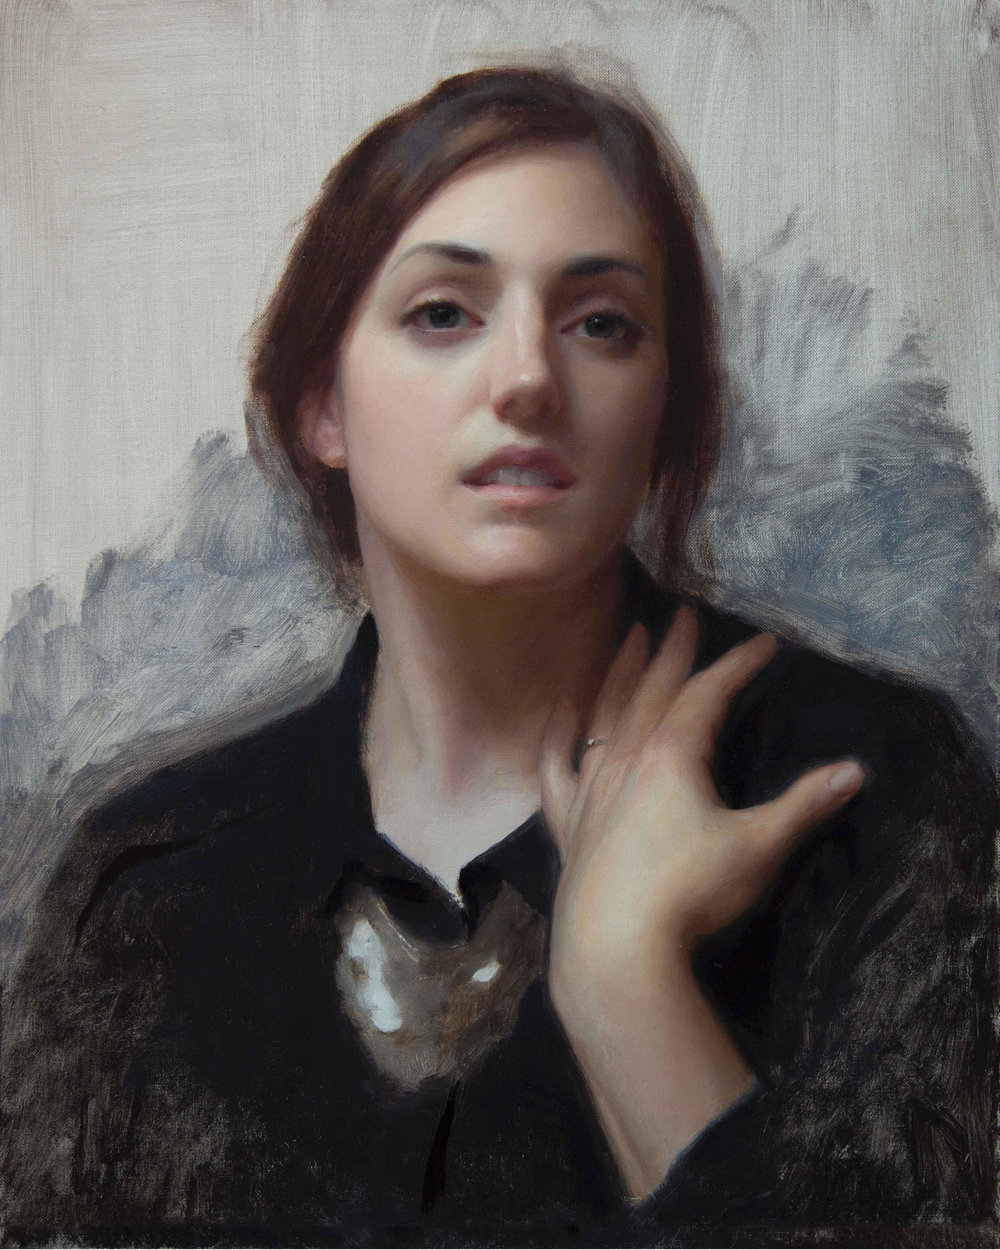 Laura in Black, 20 x 16, by Joshua LaRock